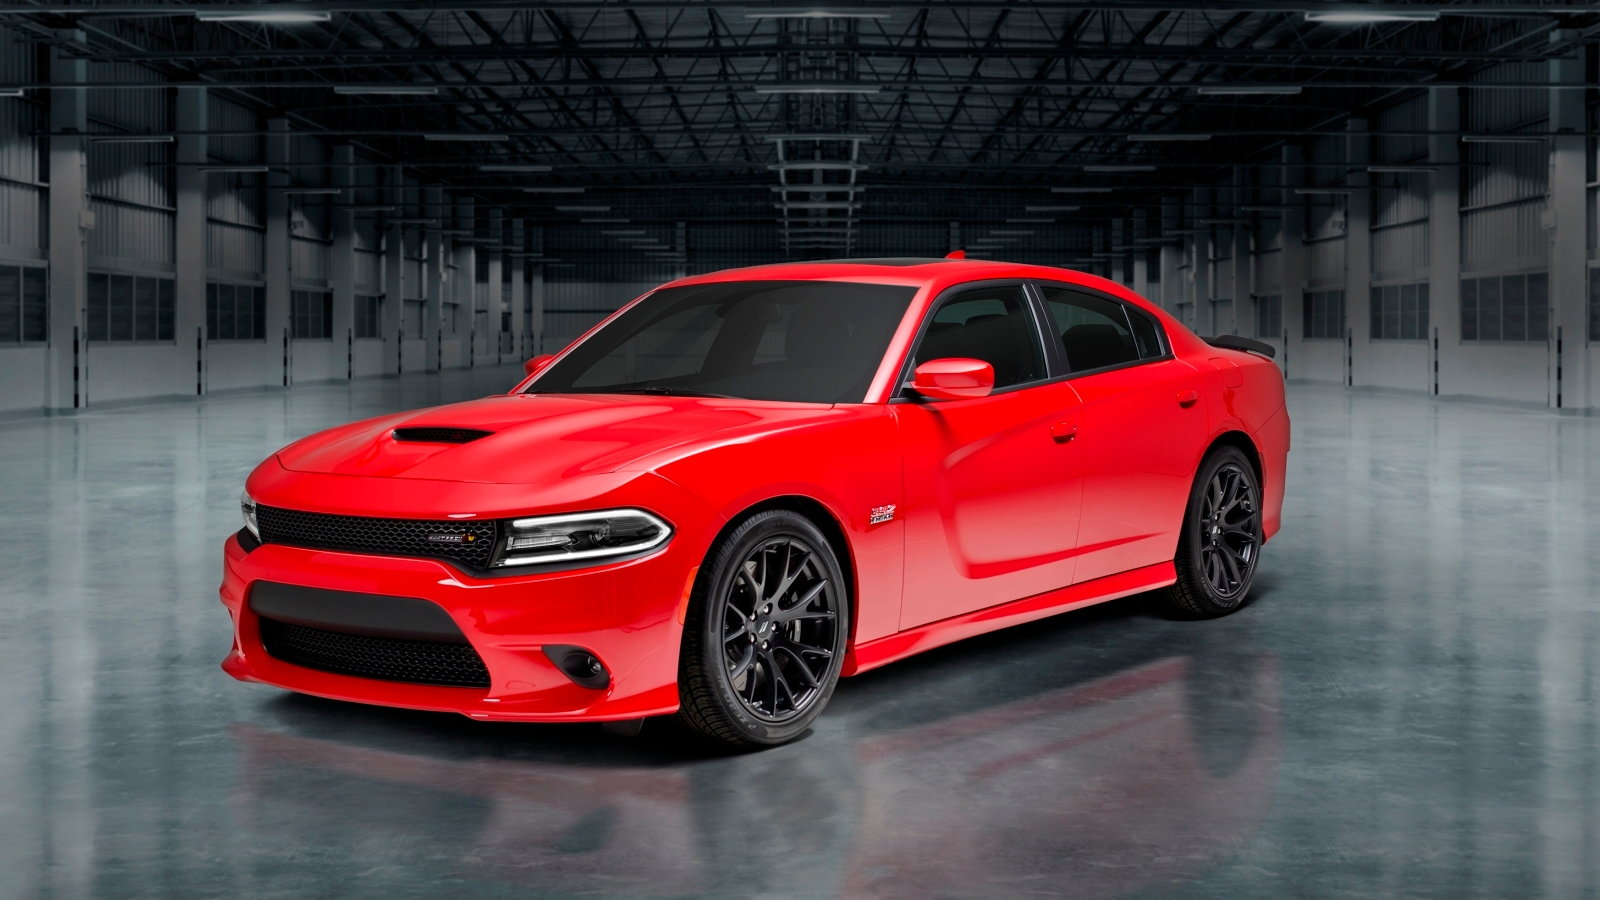 dodge scat pack incentives Charger Scat Pack offers SRT Performance at a Lower Cost